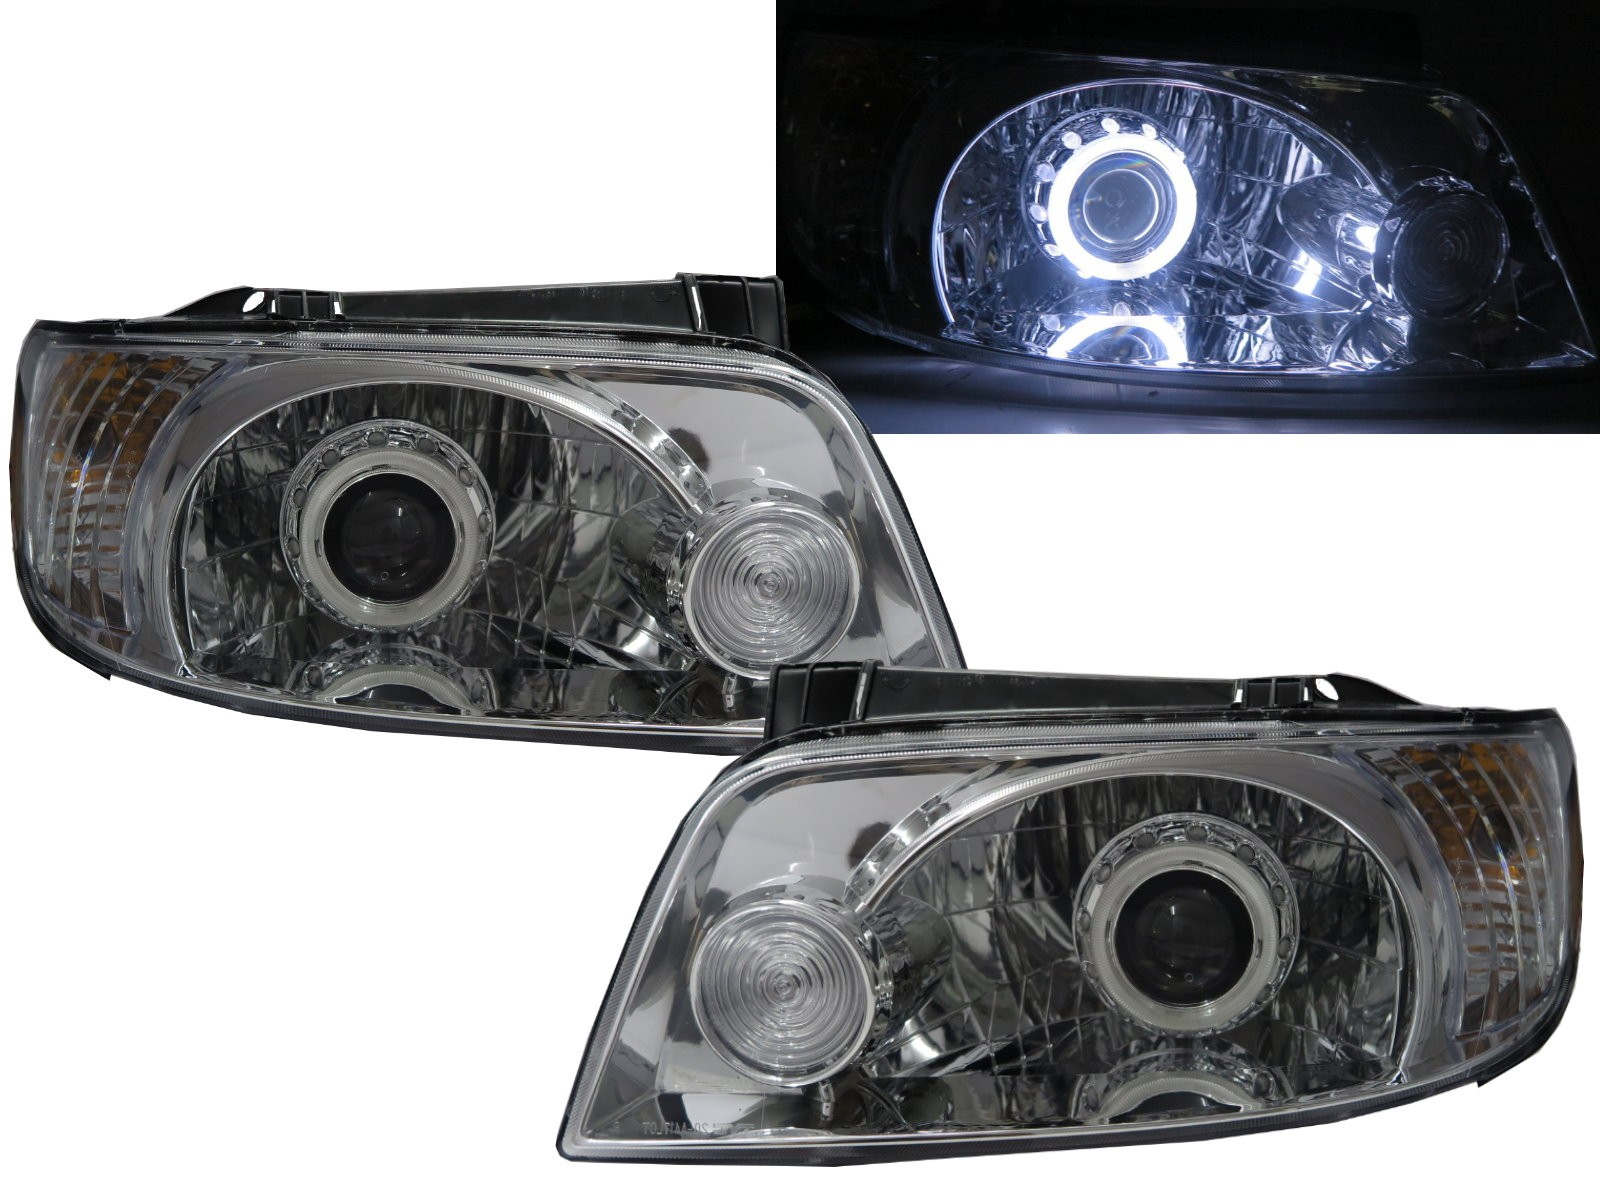 CrazyTheGod Elantra Lavita FC 2001-2004 Pre-Facelift Hatchback 5D CCFL Projector Headlight Headlamp Chrome for HYUNDAI RHD